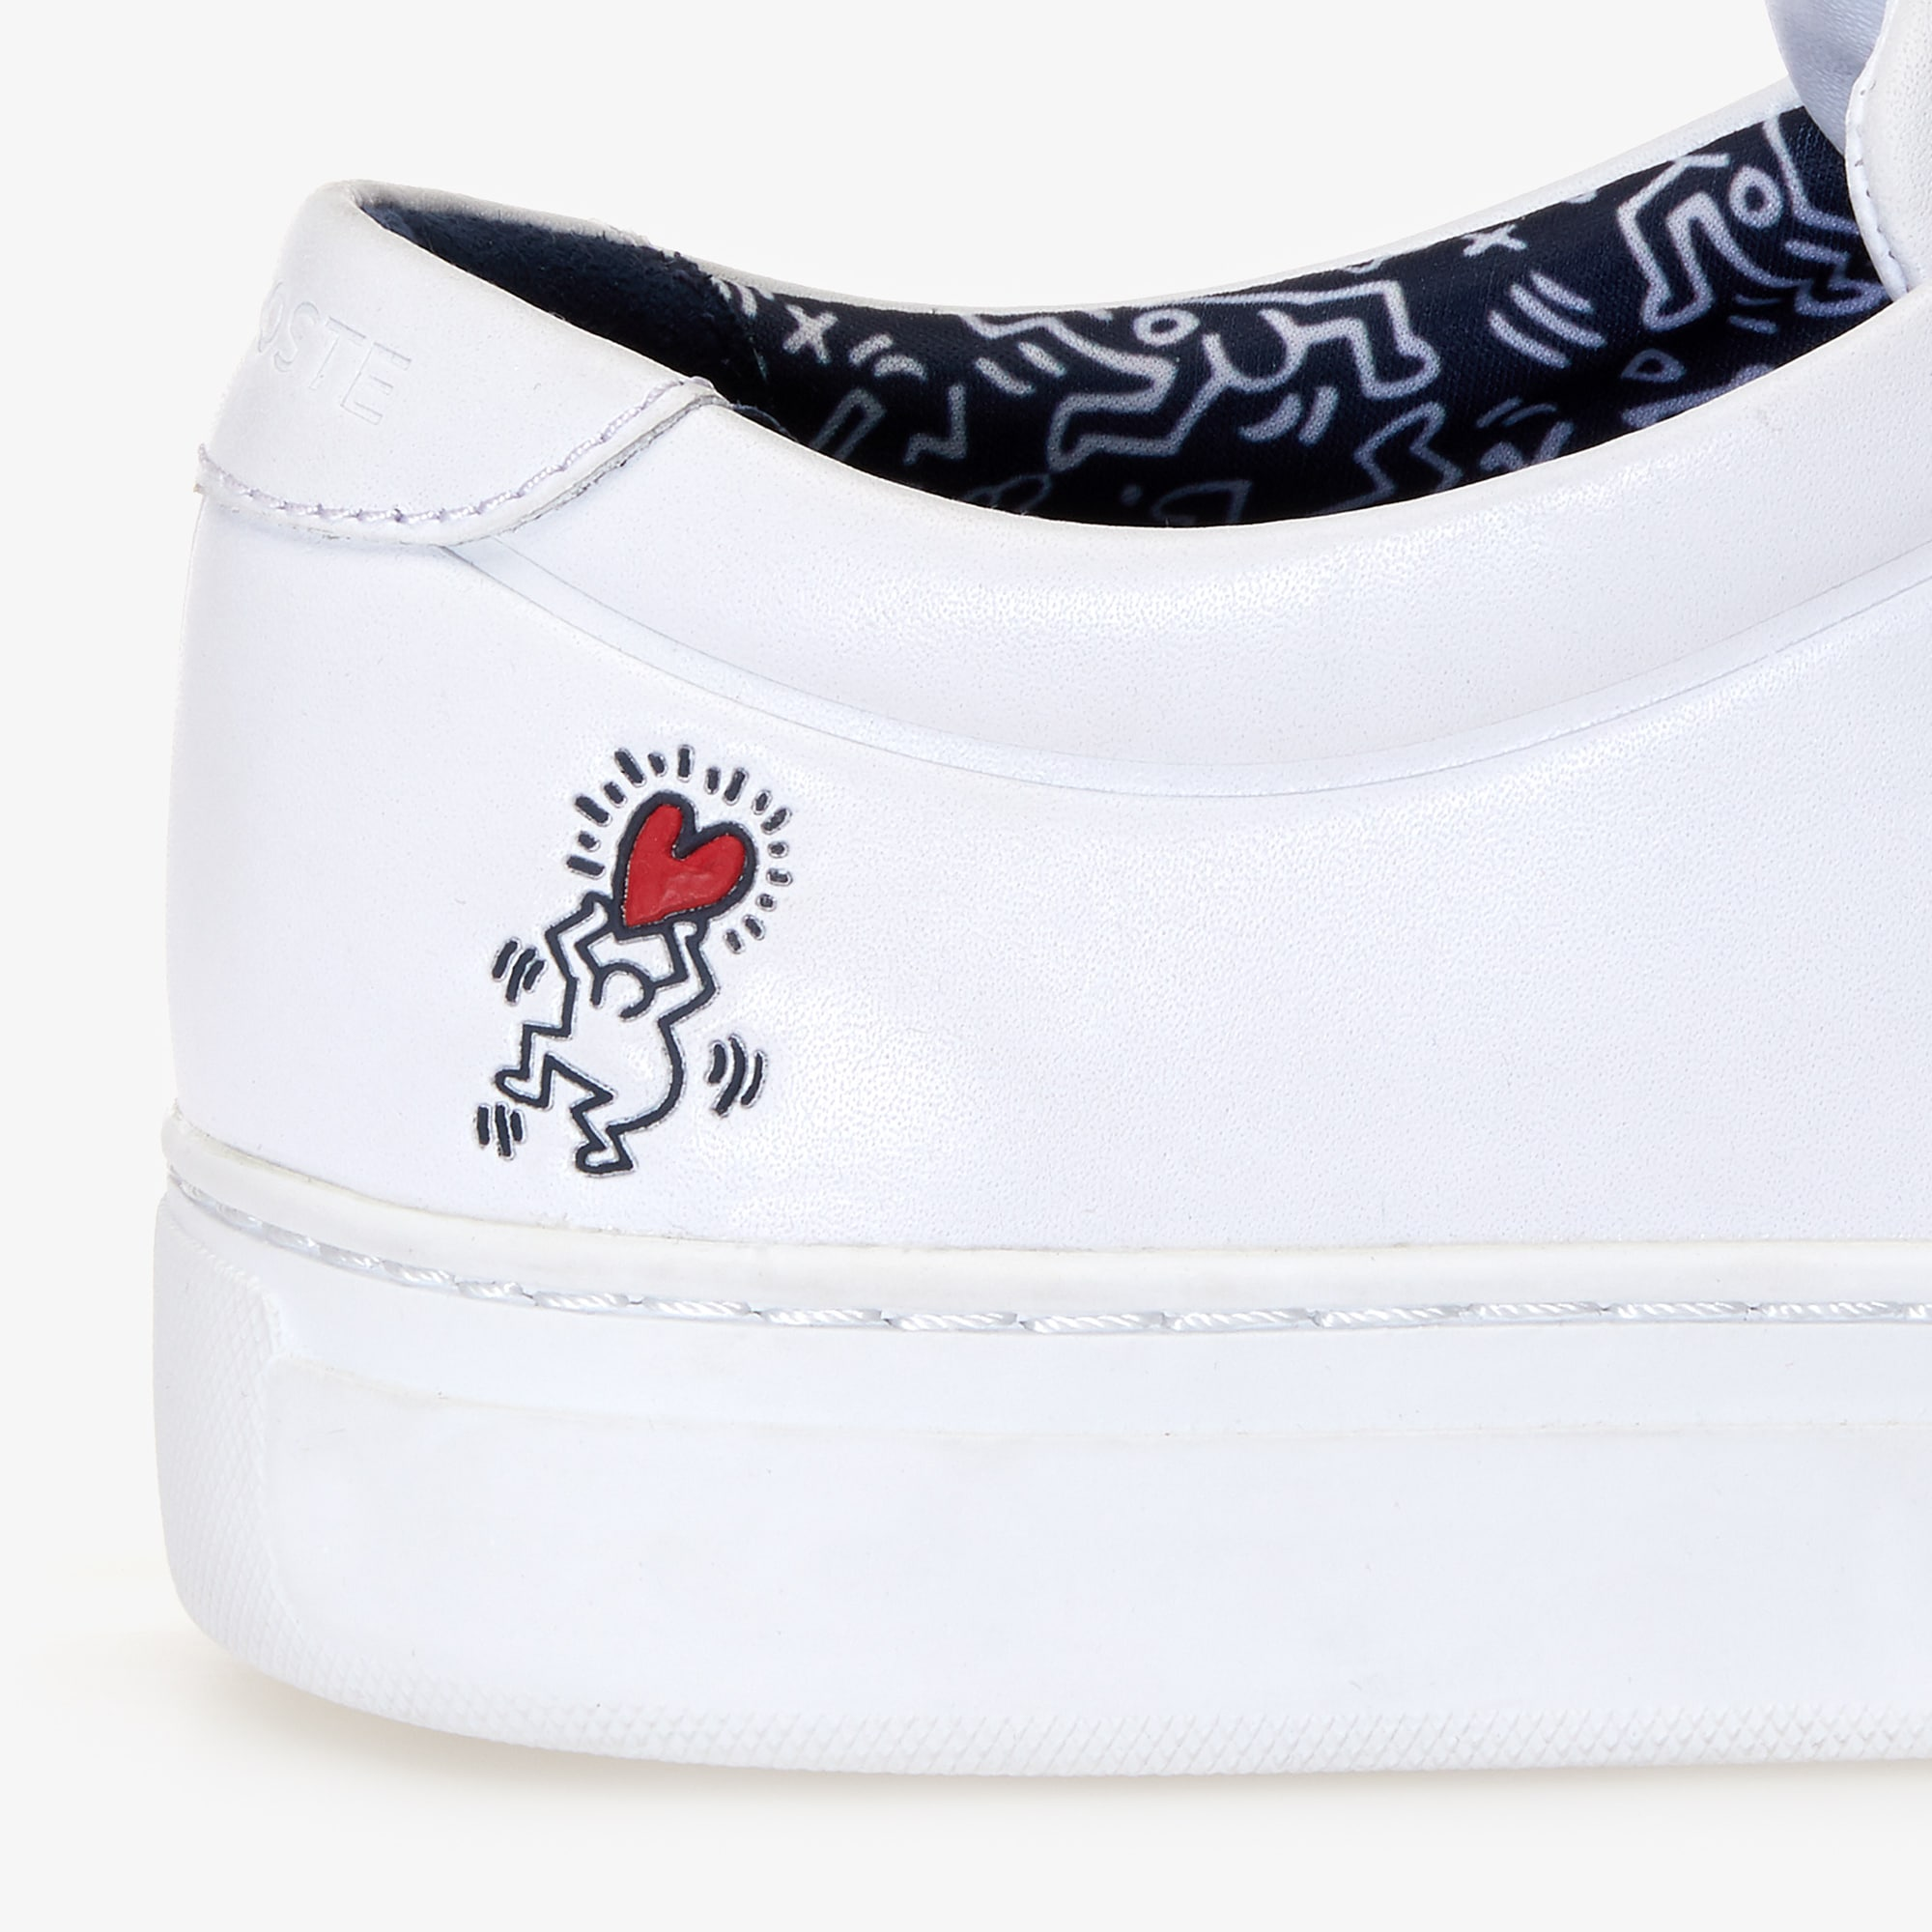 Men's L.12.12 Keith Haring Leather Sneakers